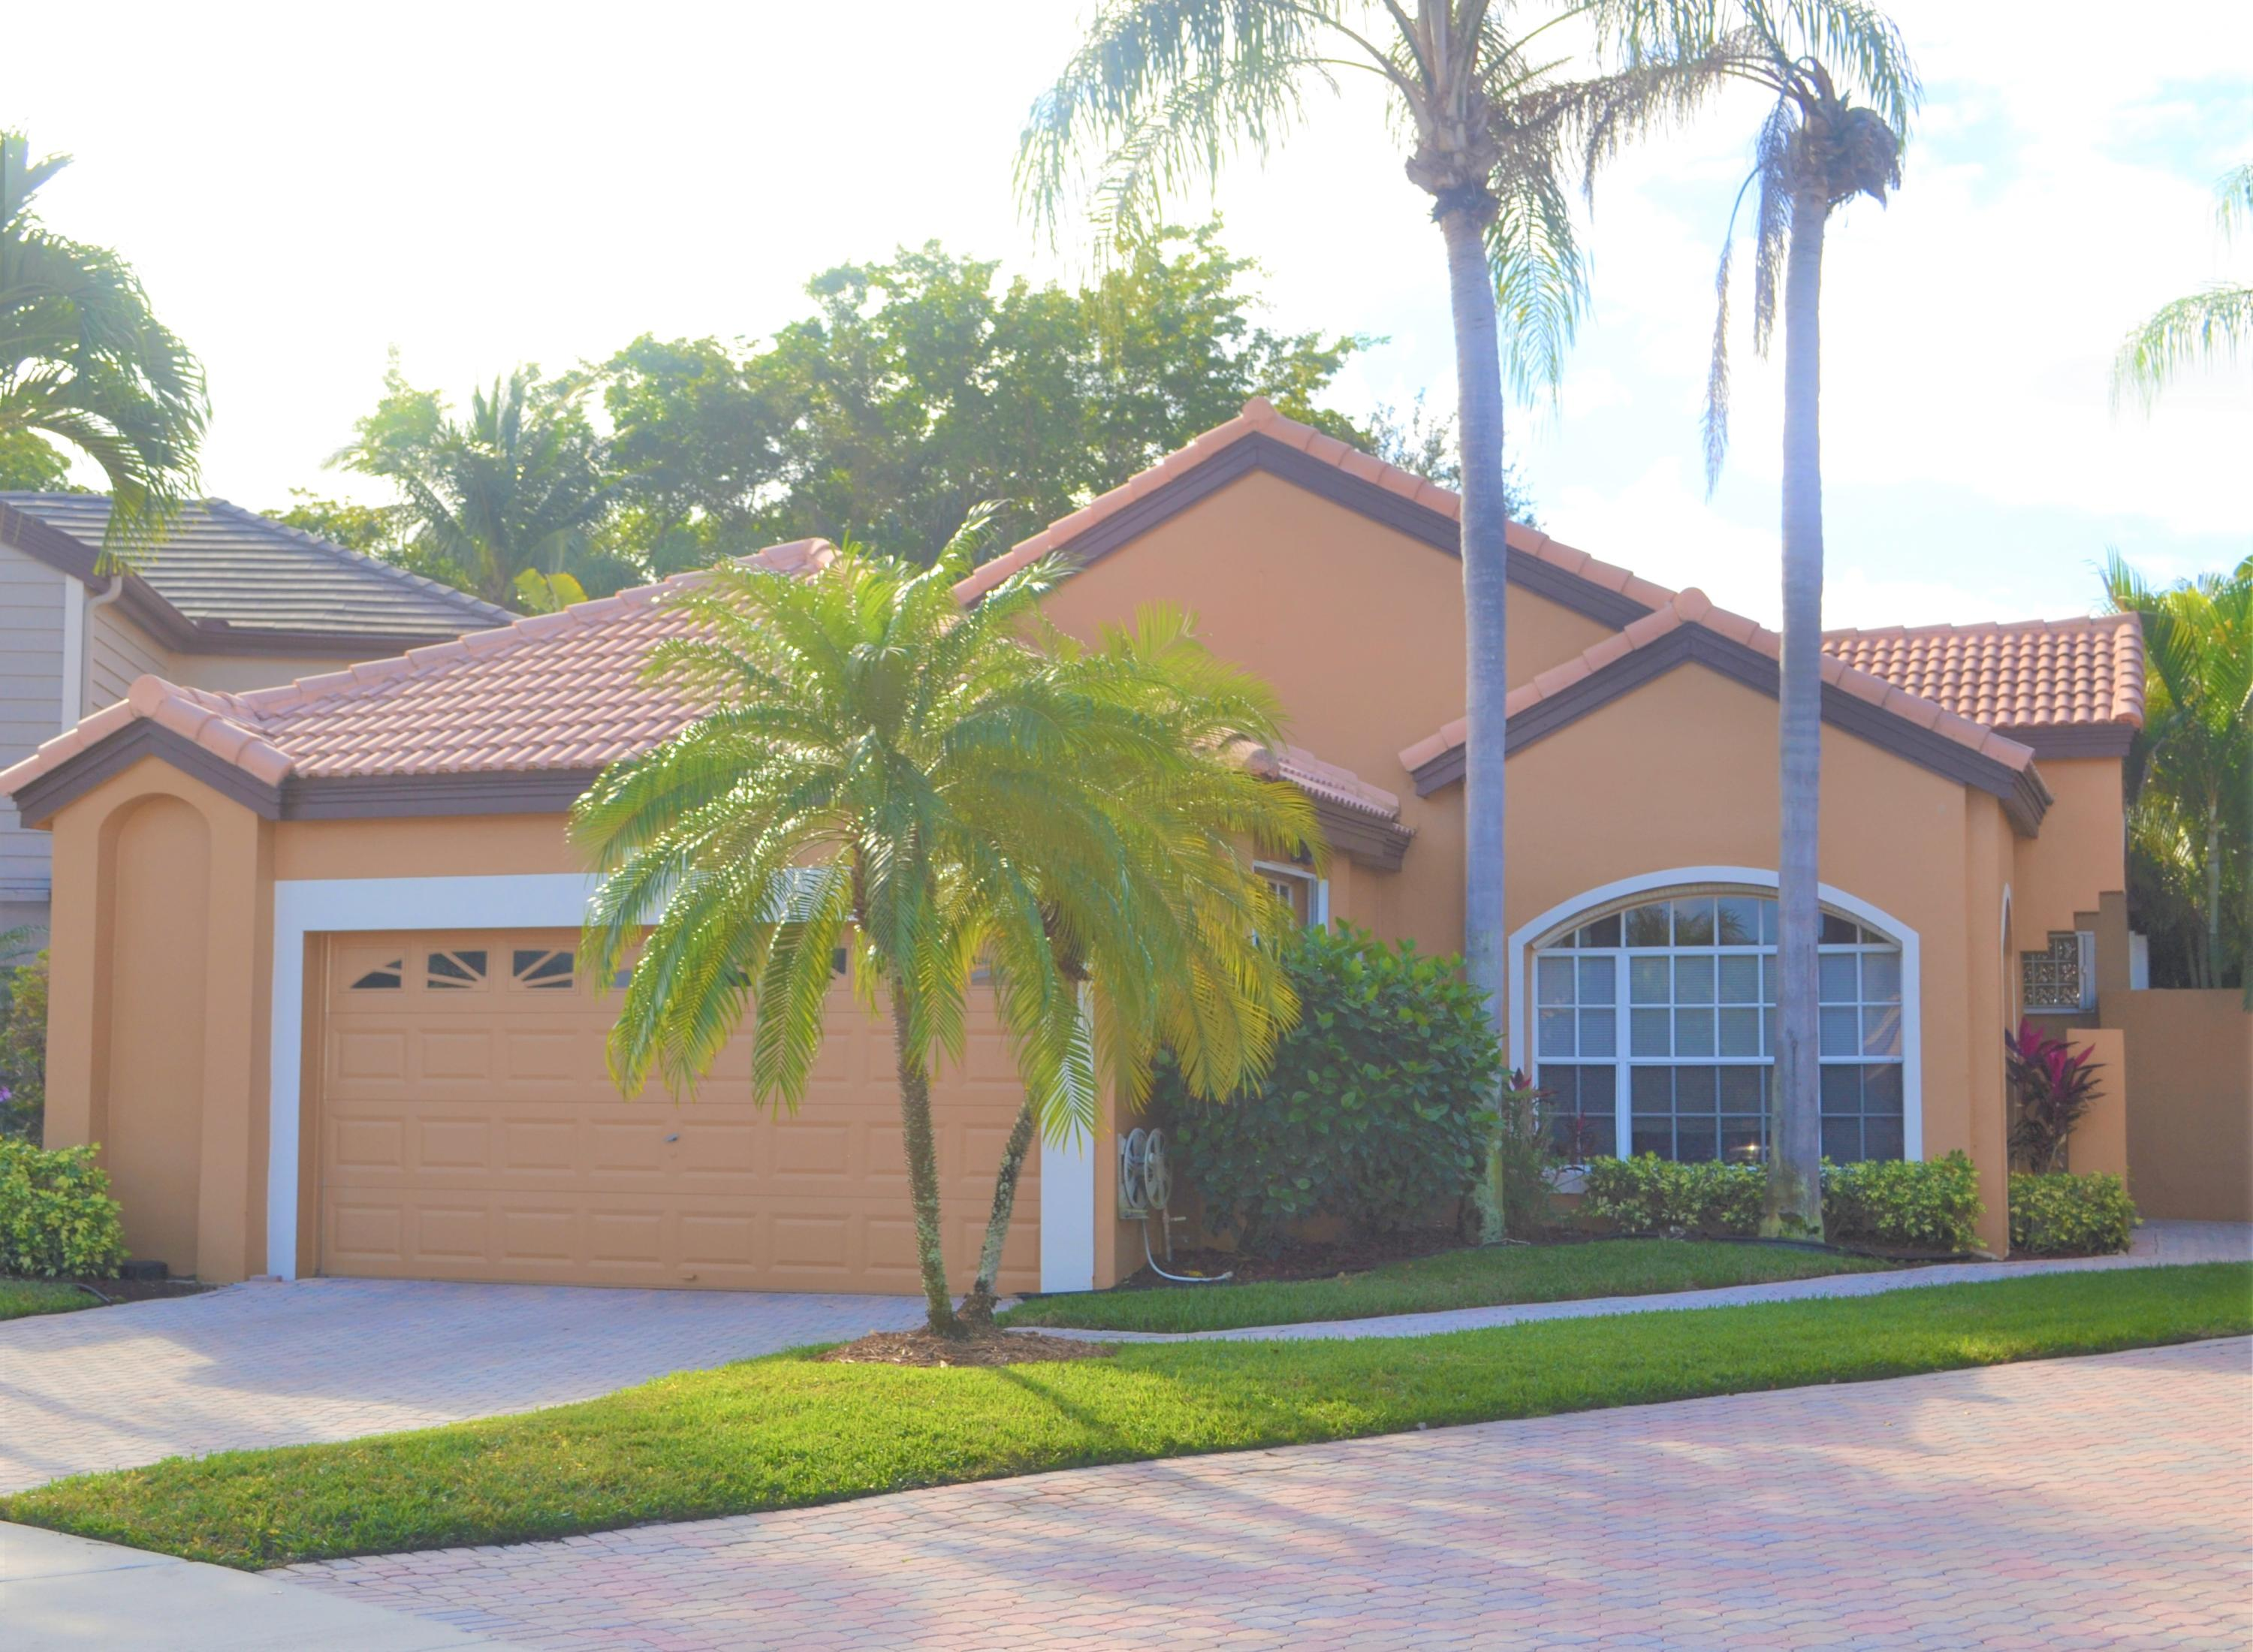 Details for 3418 51st Place Nw, Boca Raton, FL 33496